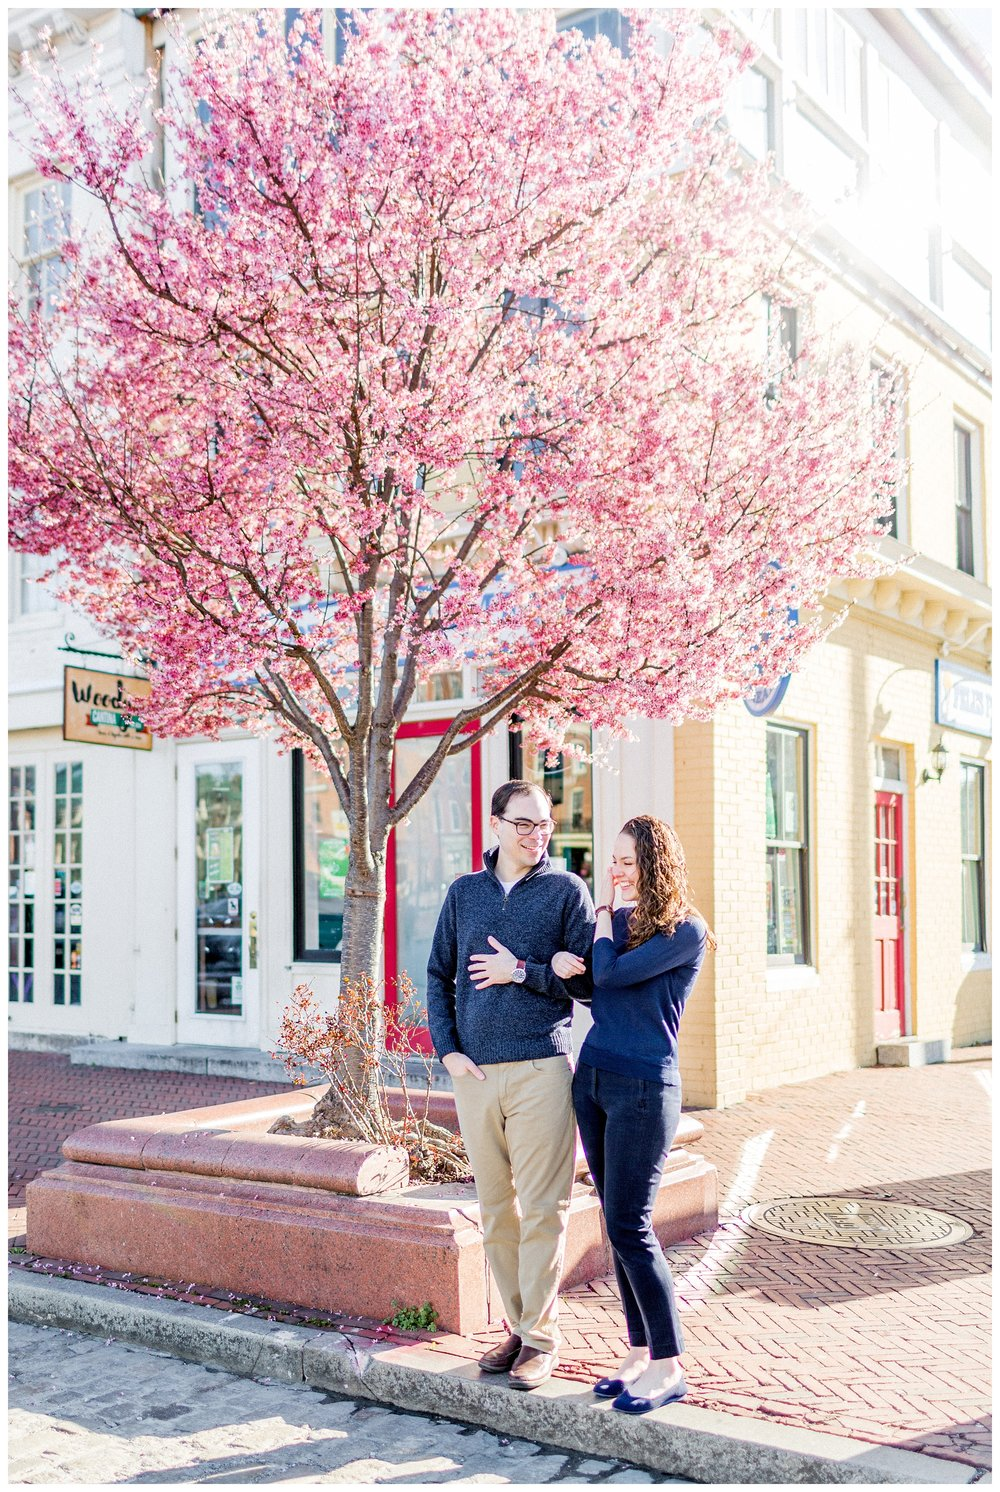 Baltimore Engagement Pictures | Maryland Wedding Photographer Kir Tuben_0030.jpg